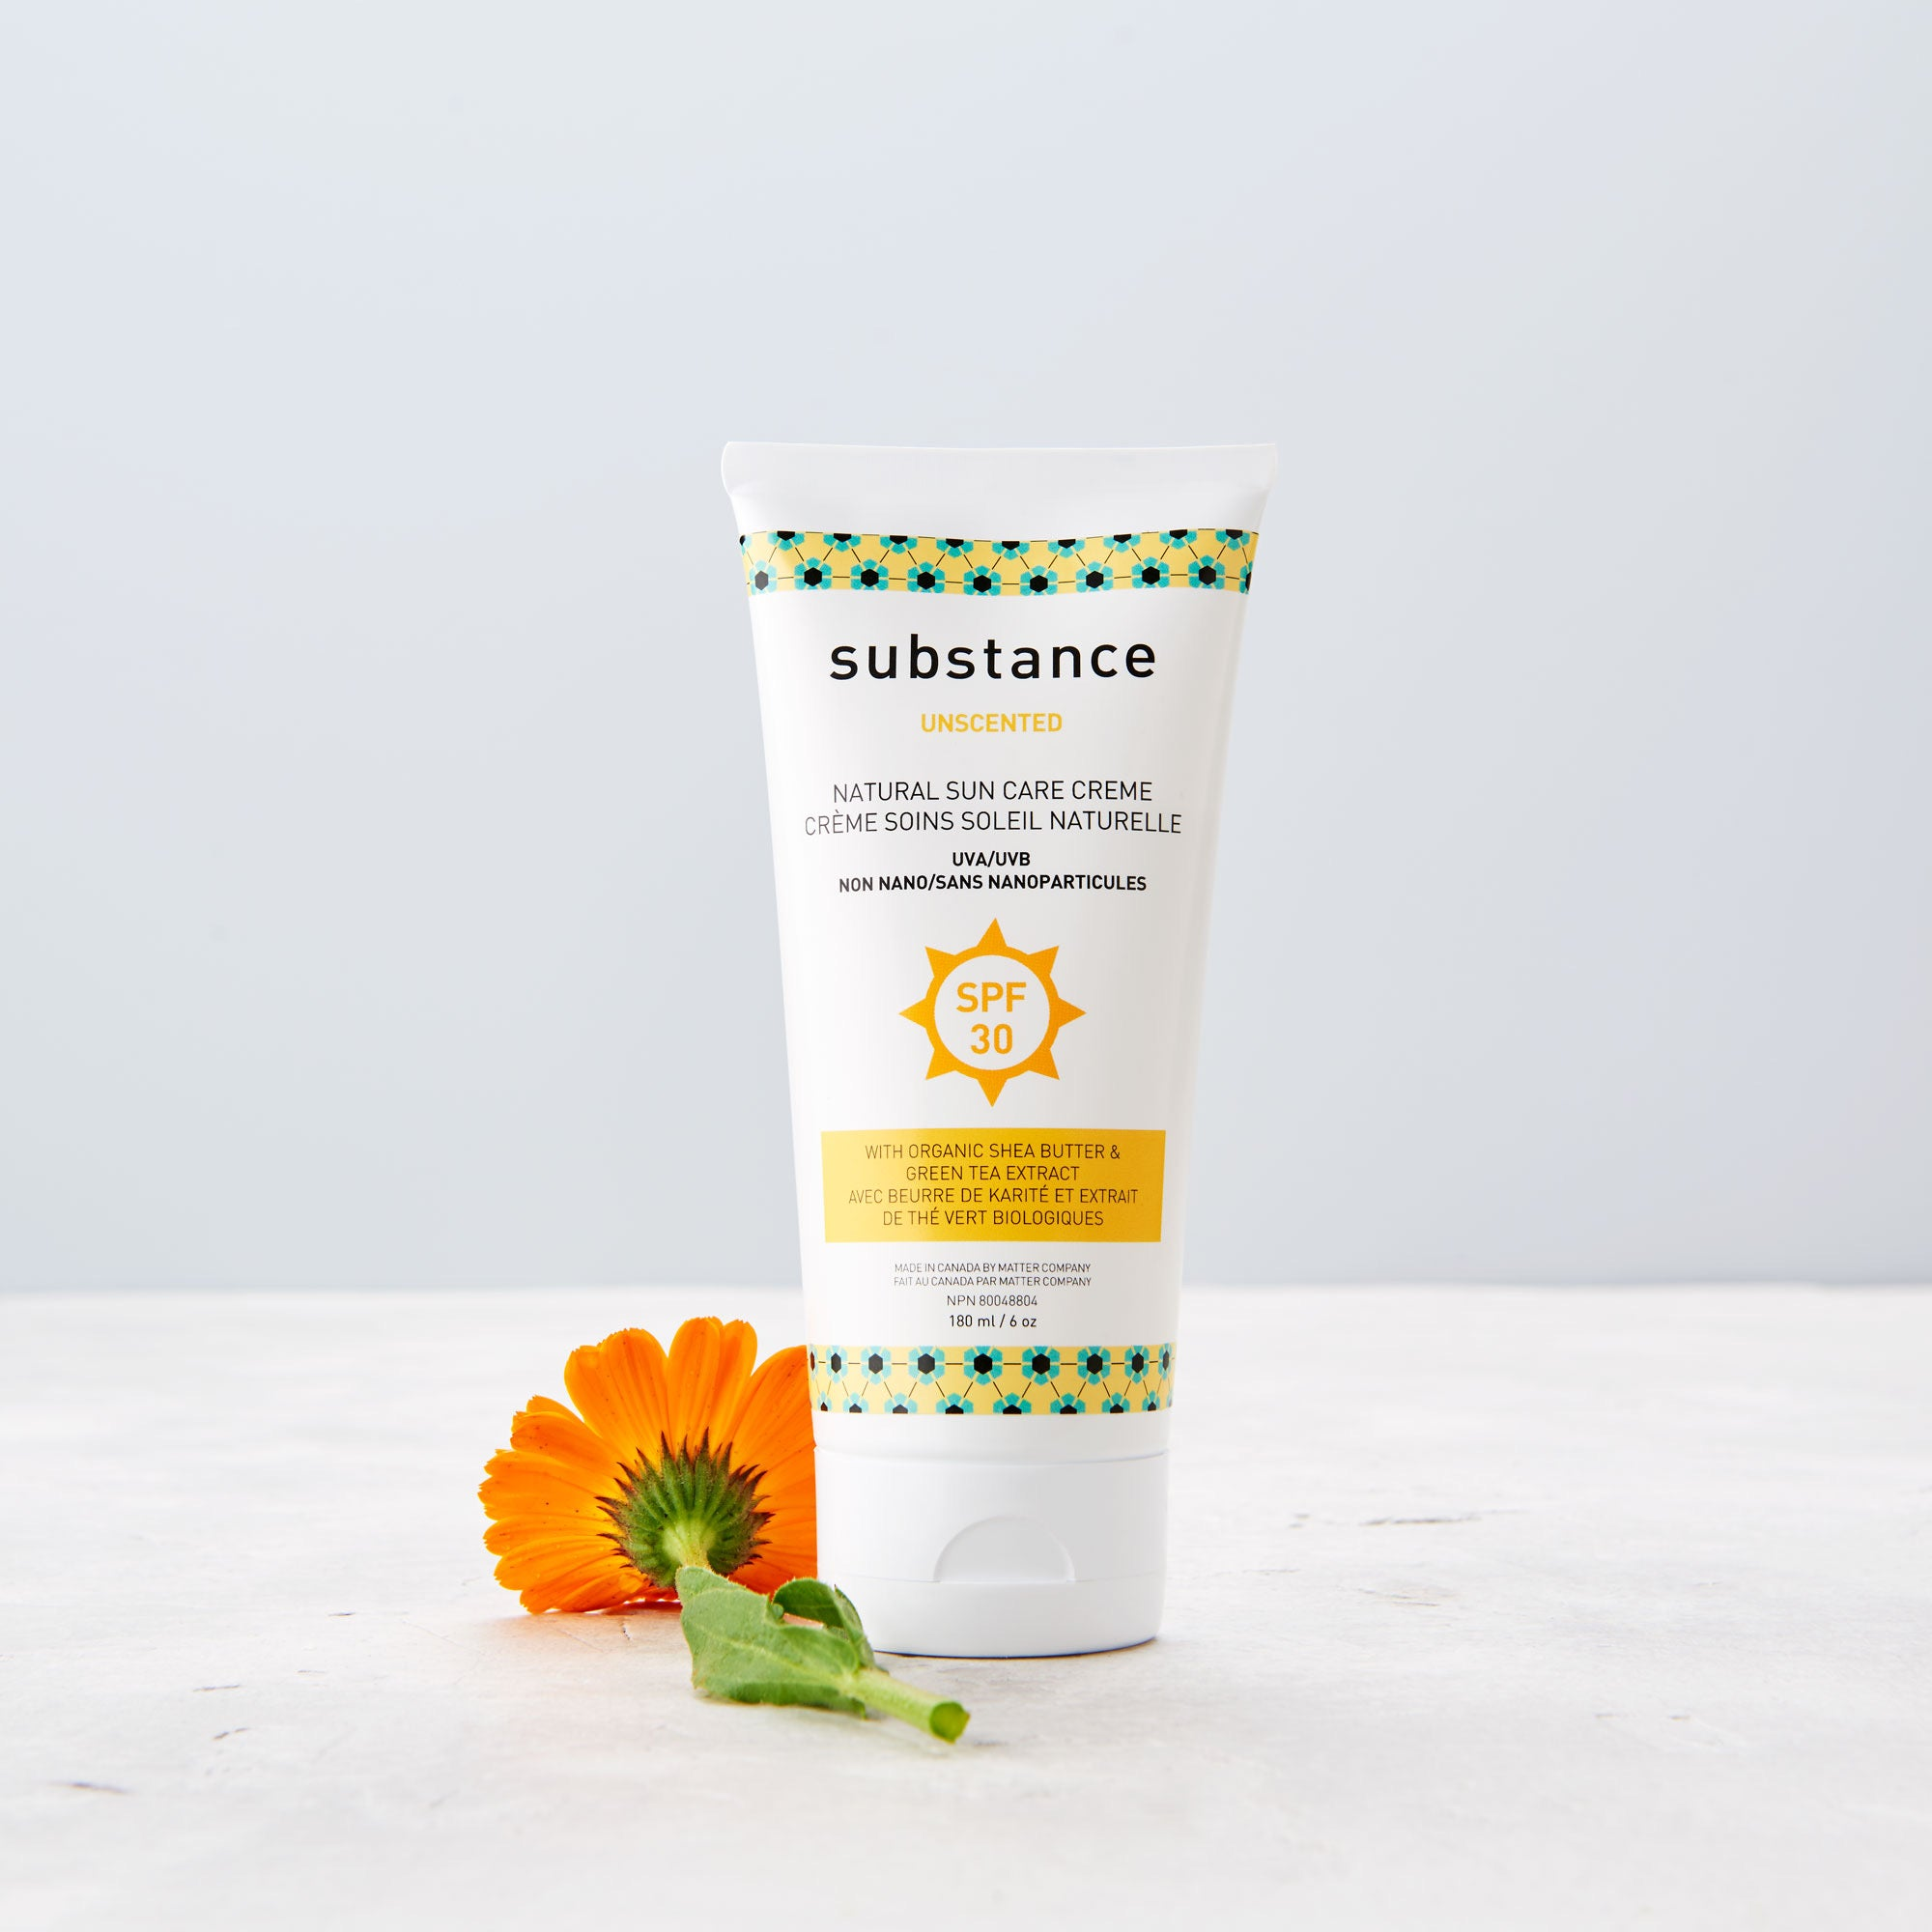 Made in Canada natural sunscreen sun care cream by Matter Company.